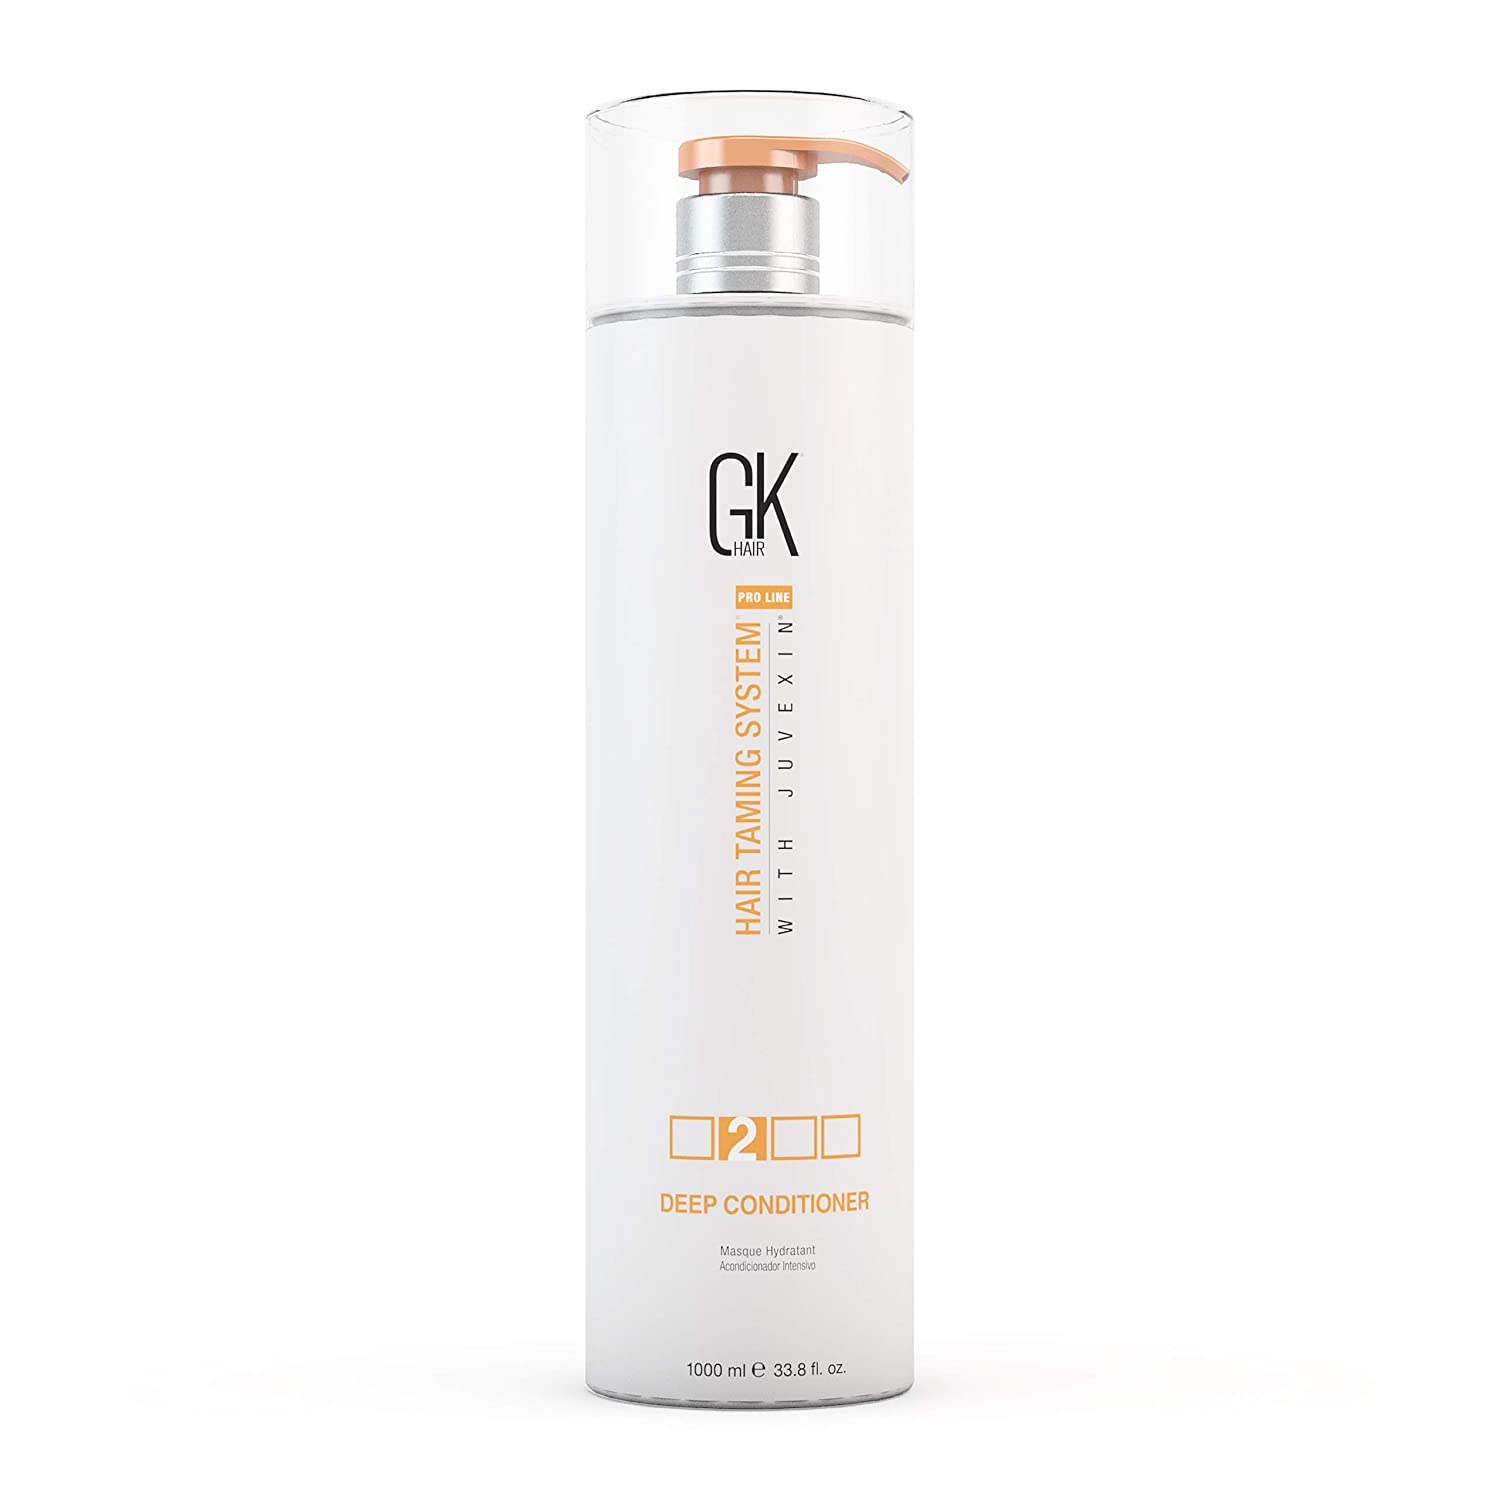 Global Keratin GKhair Deep Conditioner Hair Treatment (200g/7.5fl.oz) For Damaged, Blonde, Bleached, Curly and All Hair Types | With Natural JOJOBA Oil